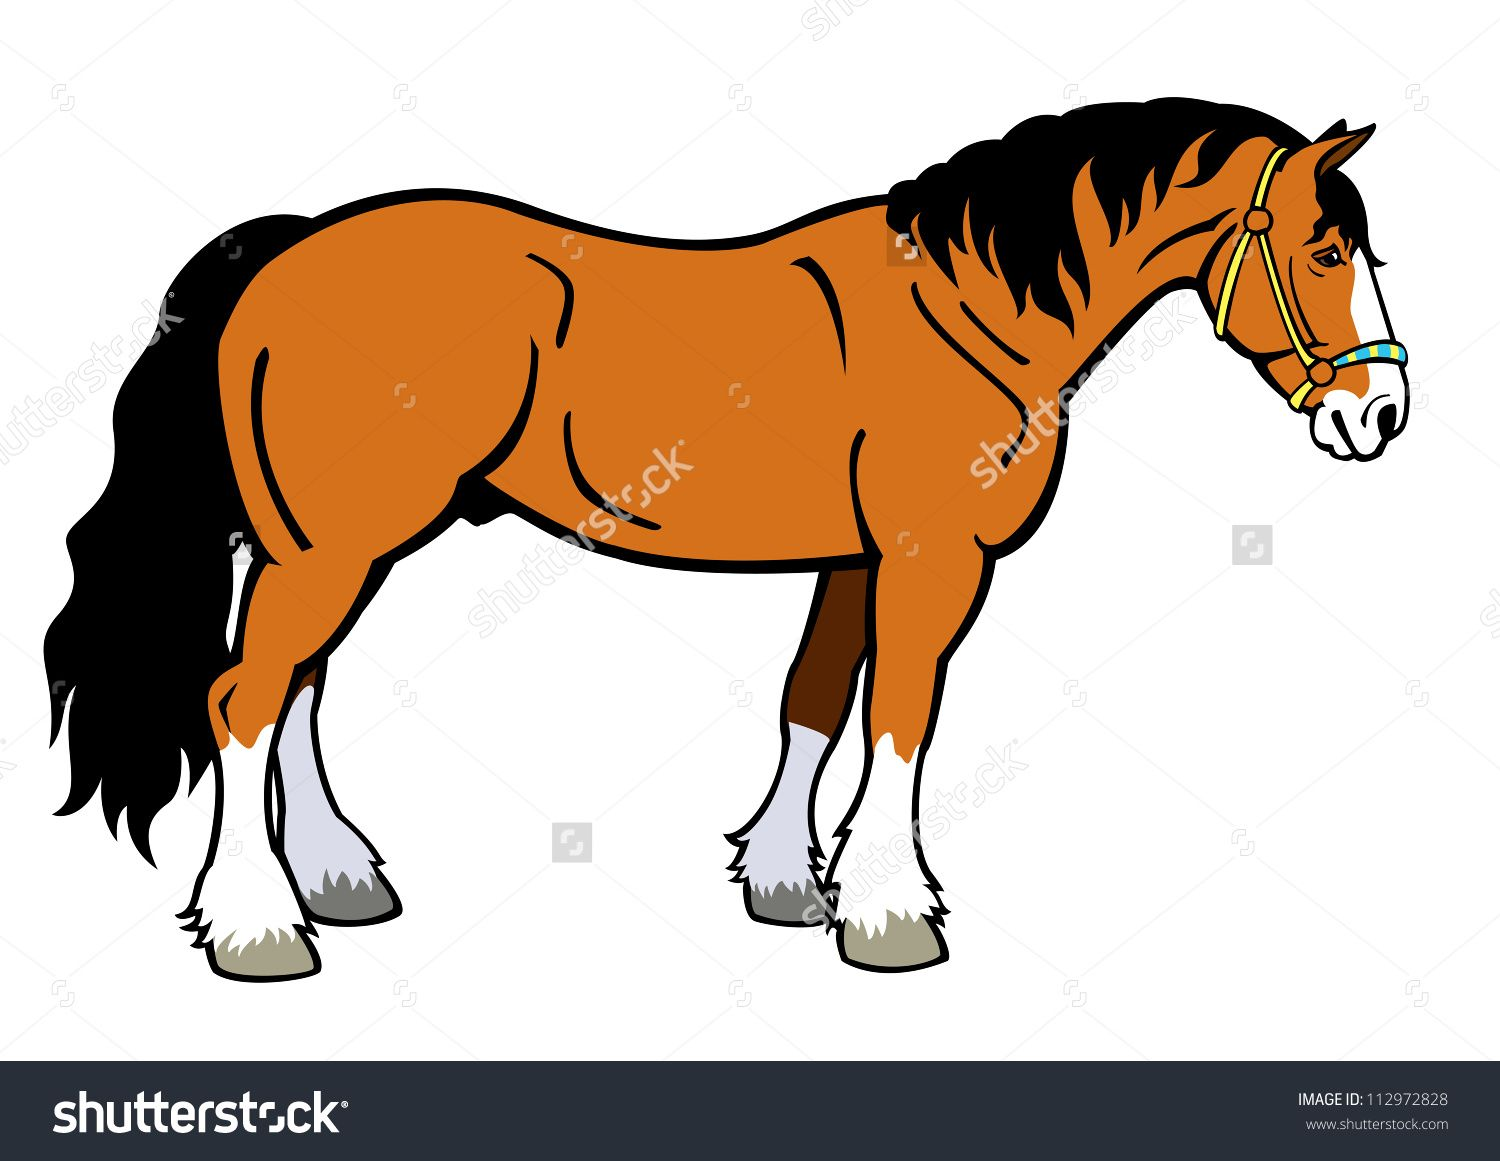 Animals clipart horse. Heavy stock vectors vector